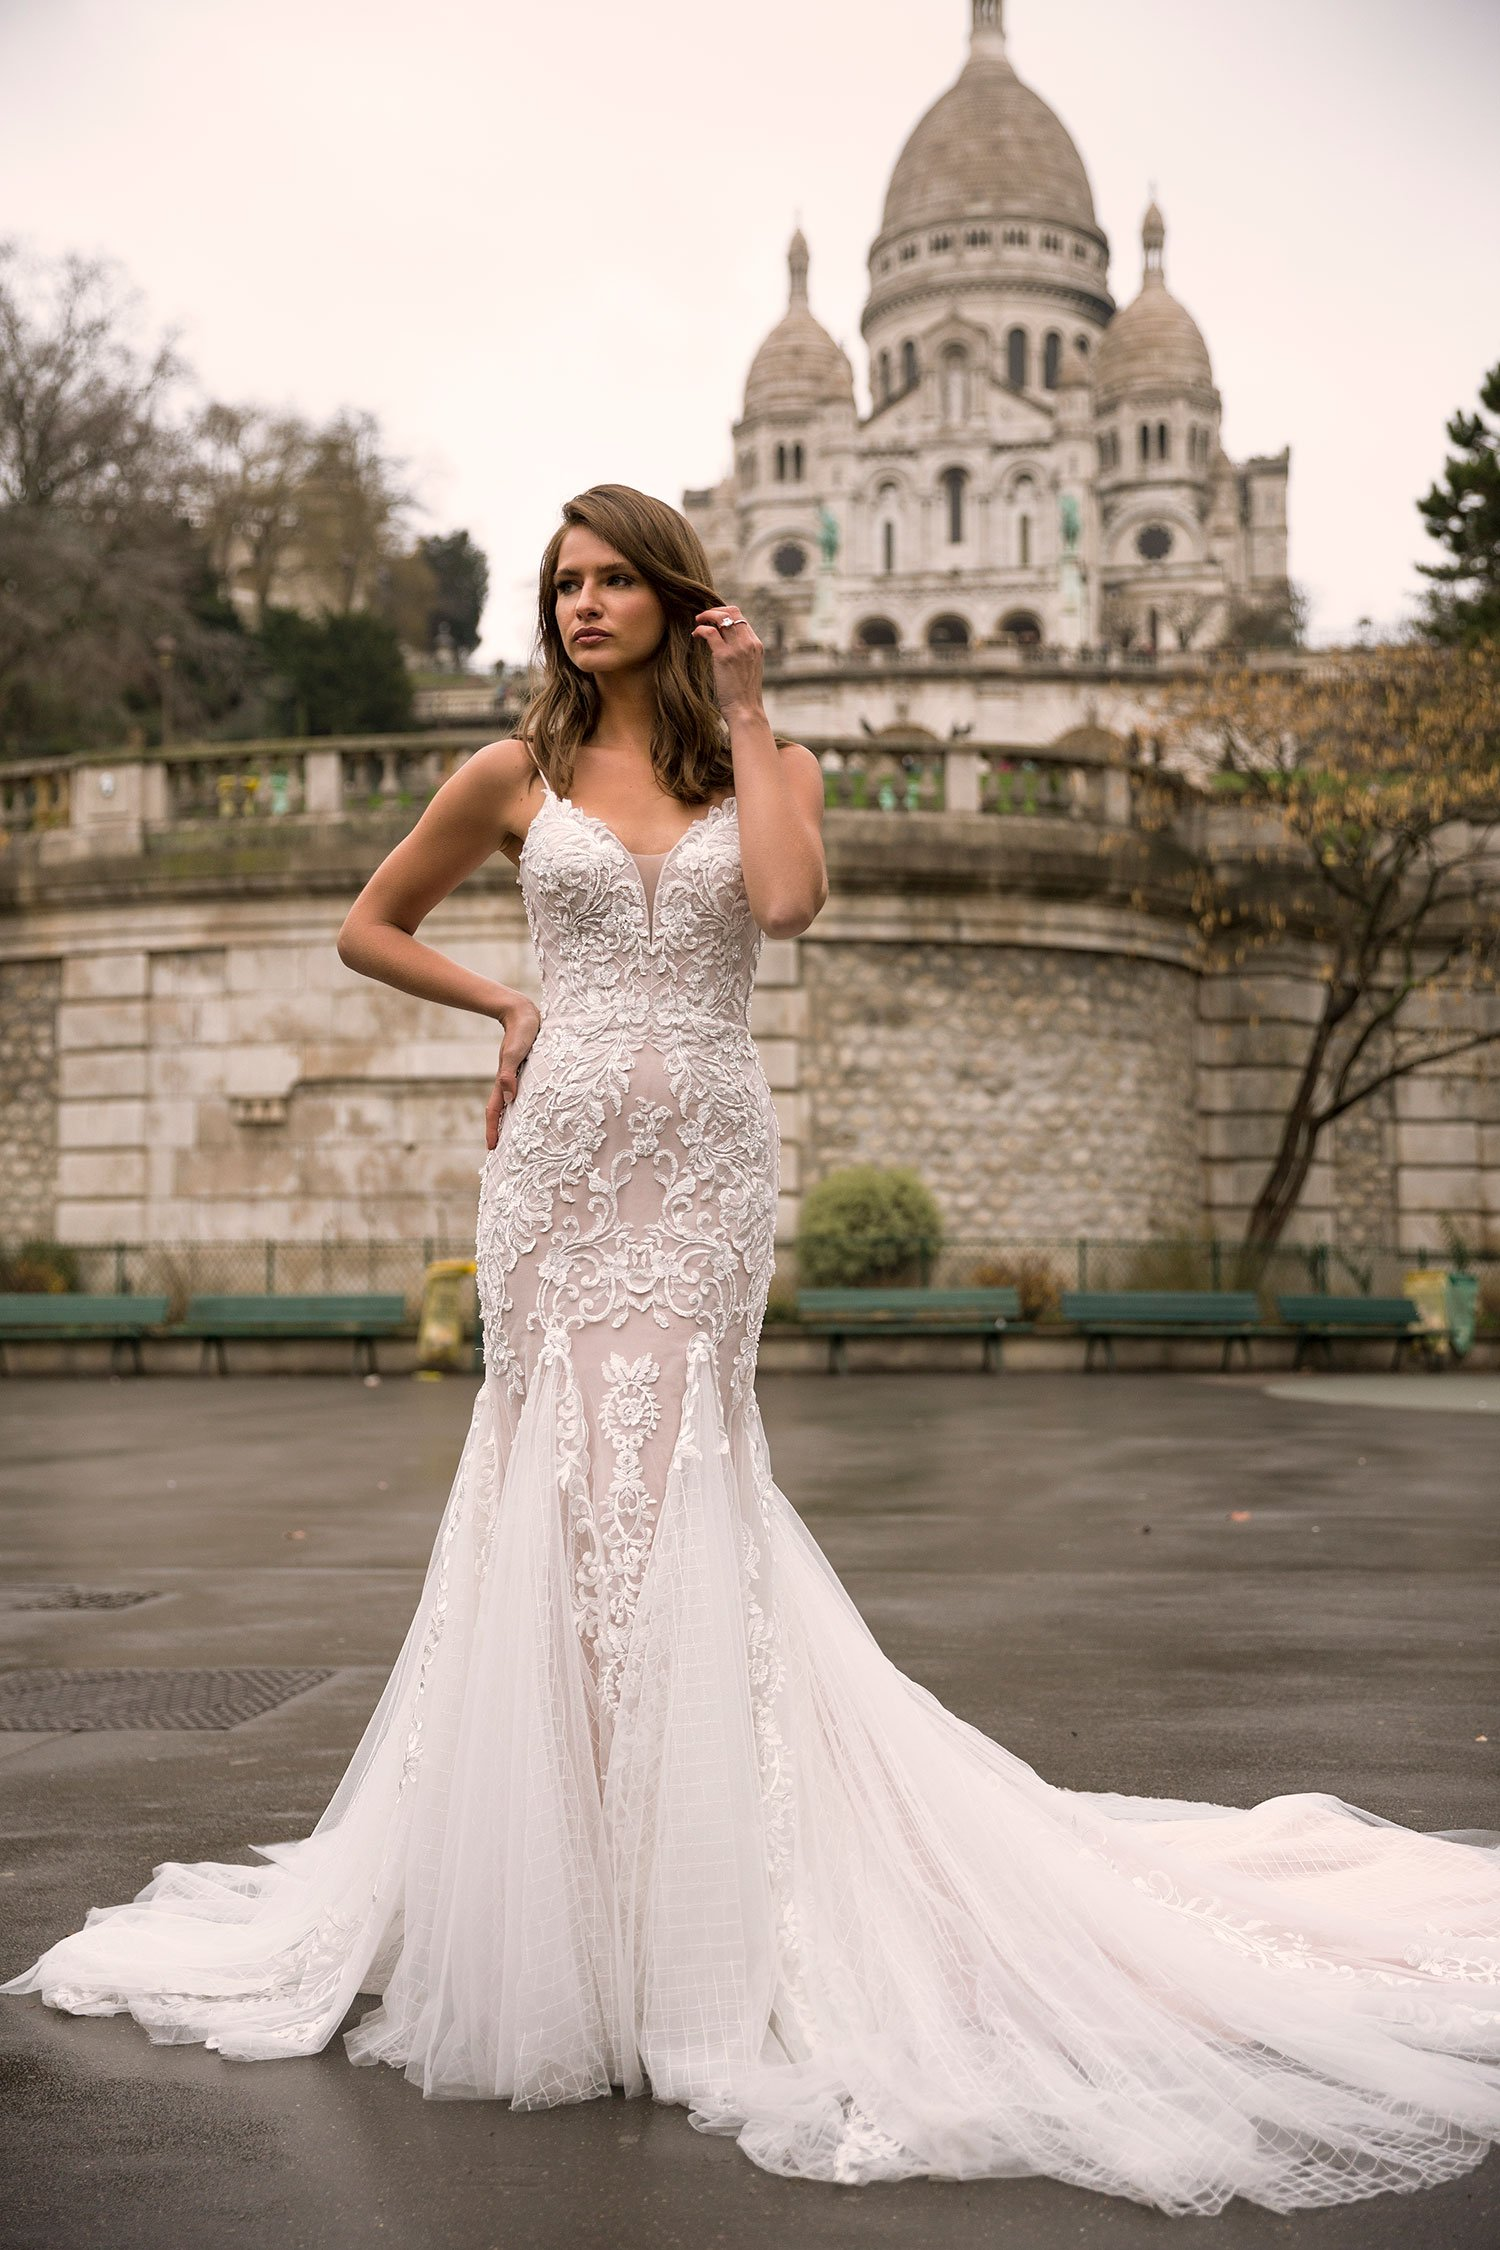 IMAYA-ML7219-FULL-LACE-FIT-AND-FLARE-GOWN-WITH-SPAGHETTI-STRAPS-AND-LOW-ZIP-UP-BACK-WEDDING-DRESS-MADI-LANE-BRIDAL3